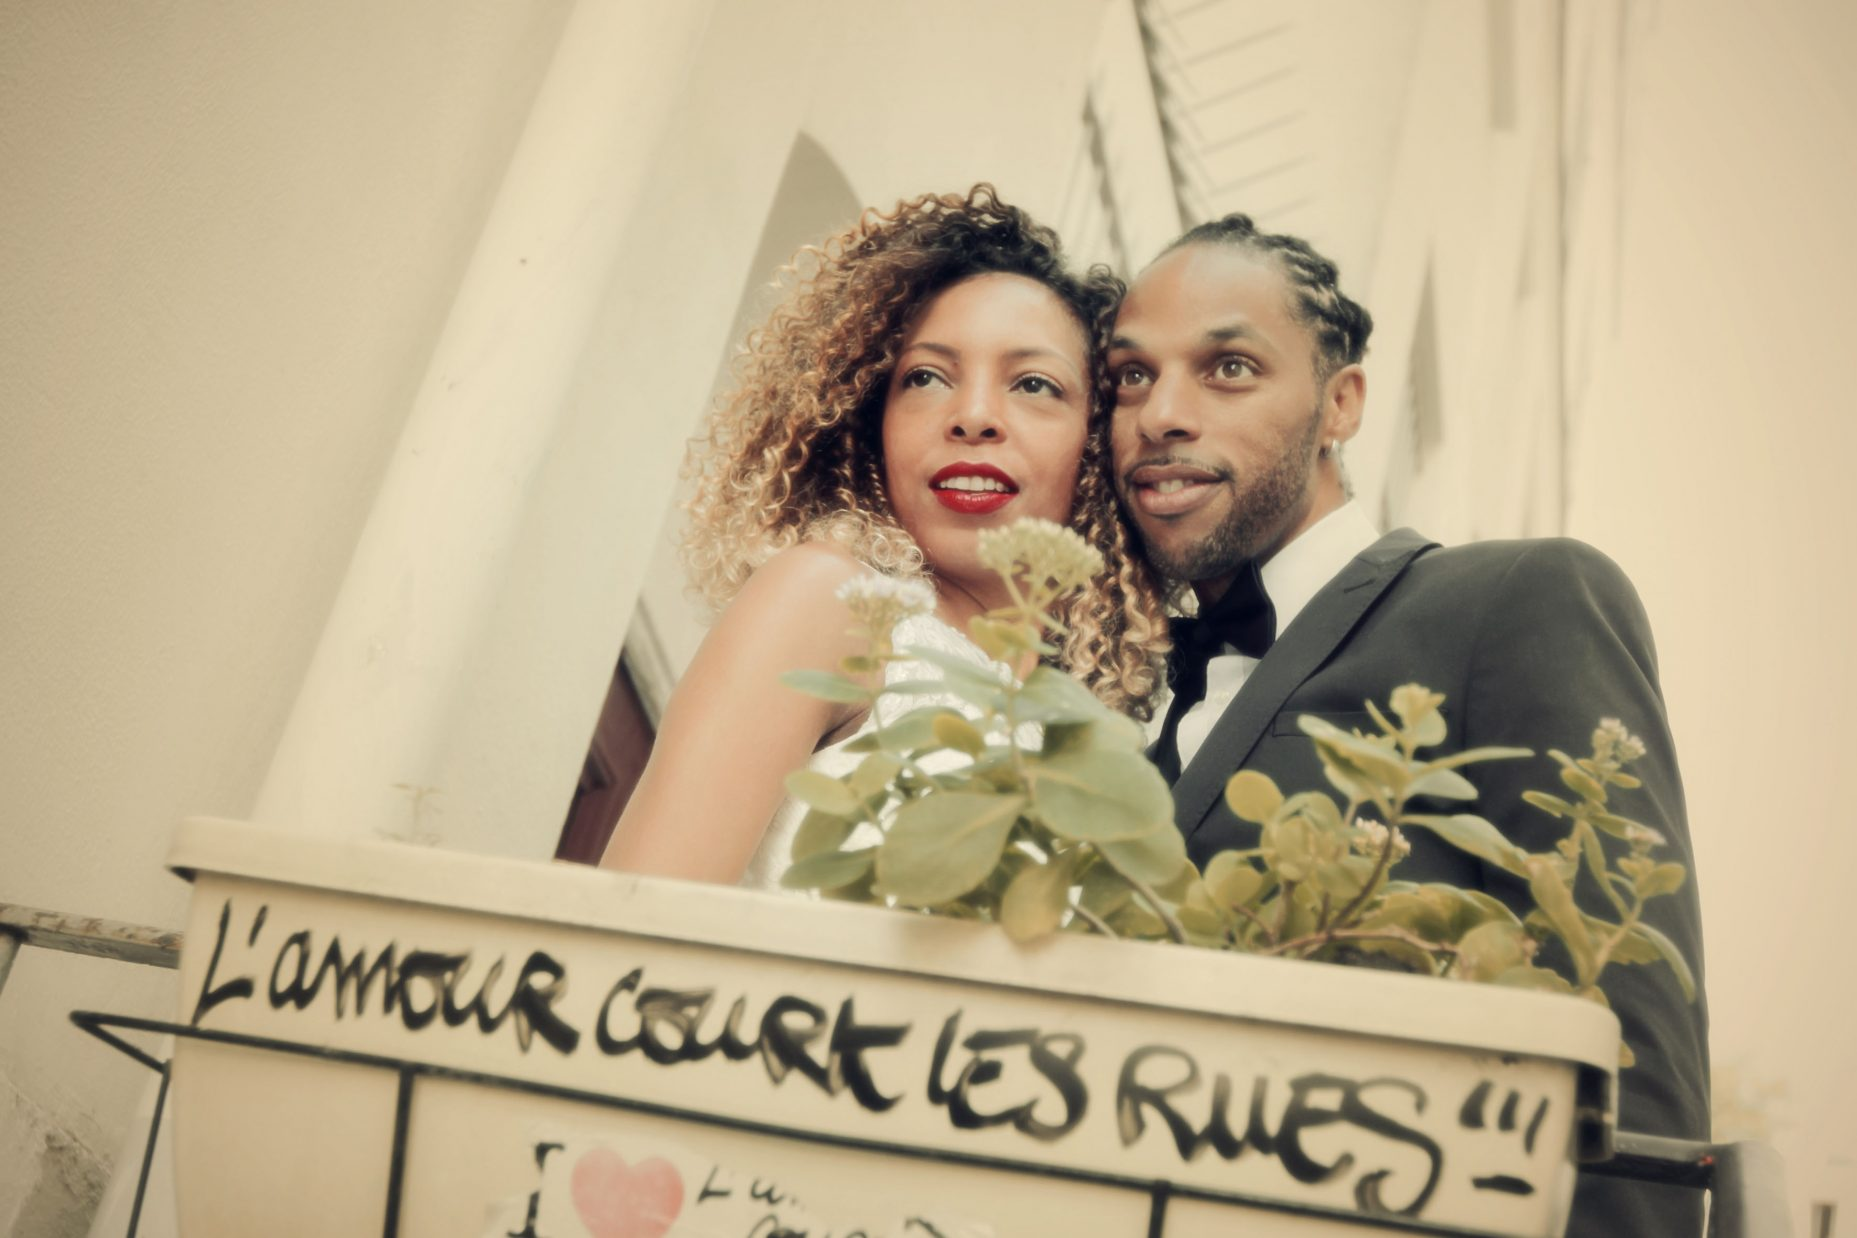 Linda et Rodney PPF WEDDINGS